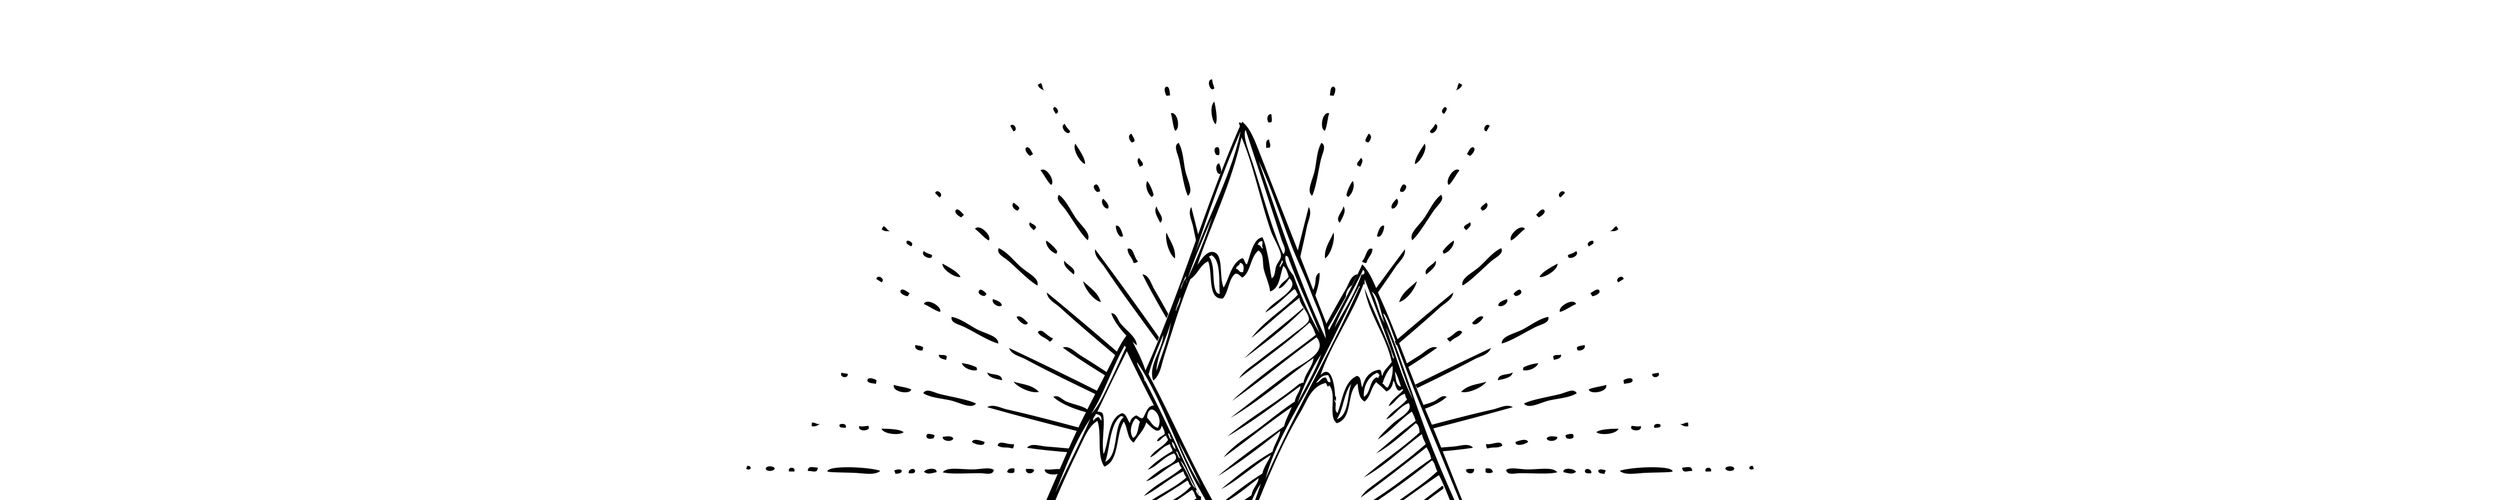 TahoePops_Mountain_Background.png